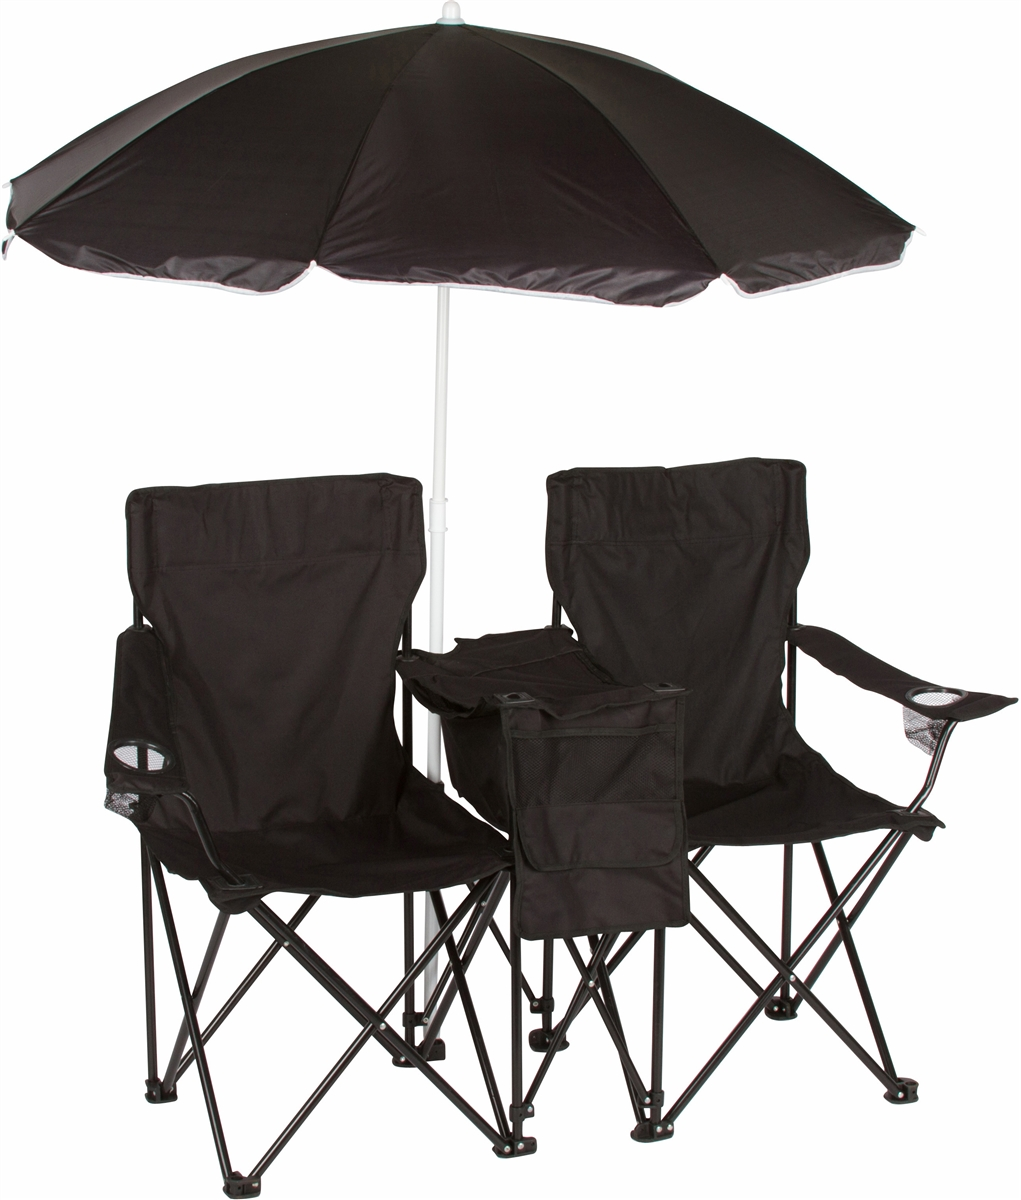 Double Folding Camp And Beach Chair With Removable Umbrella Cooler By Trademark Innovations Black